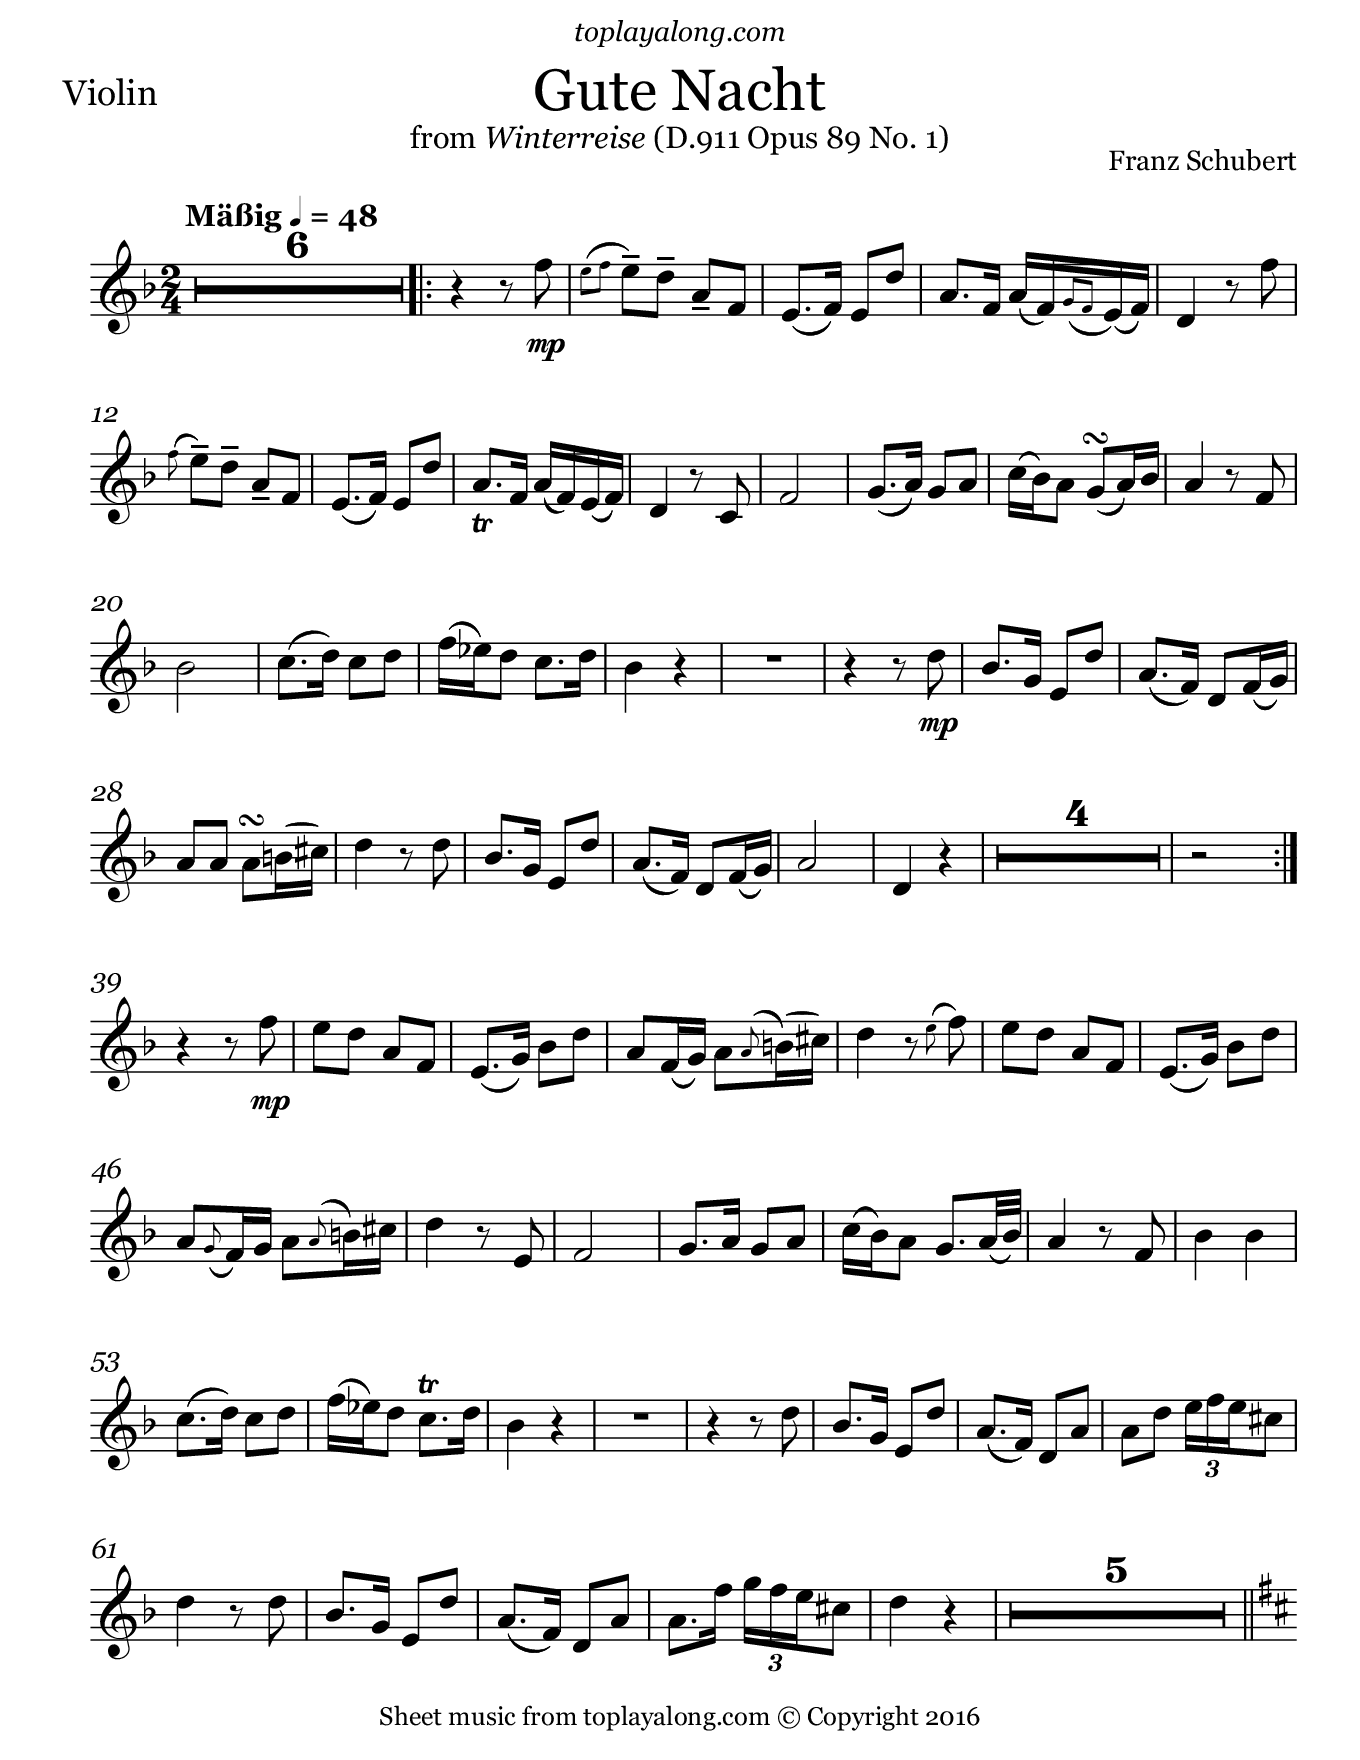 Gute Nacht from Winterreise by Schubert. Sheet music for Violin, page 1.